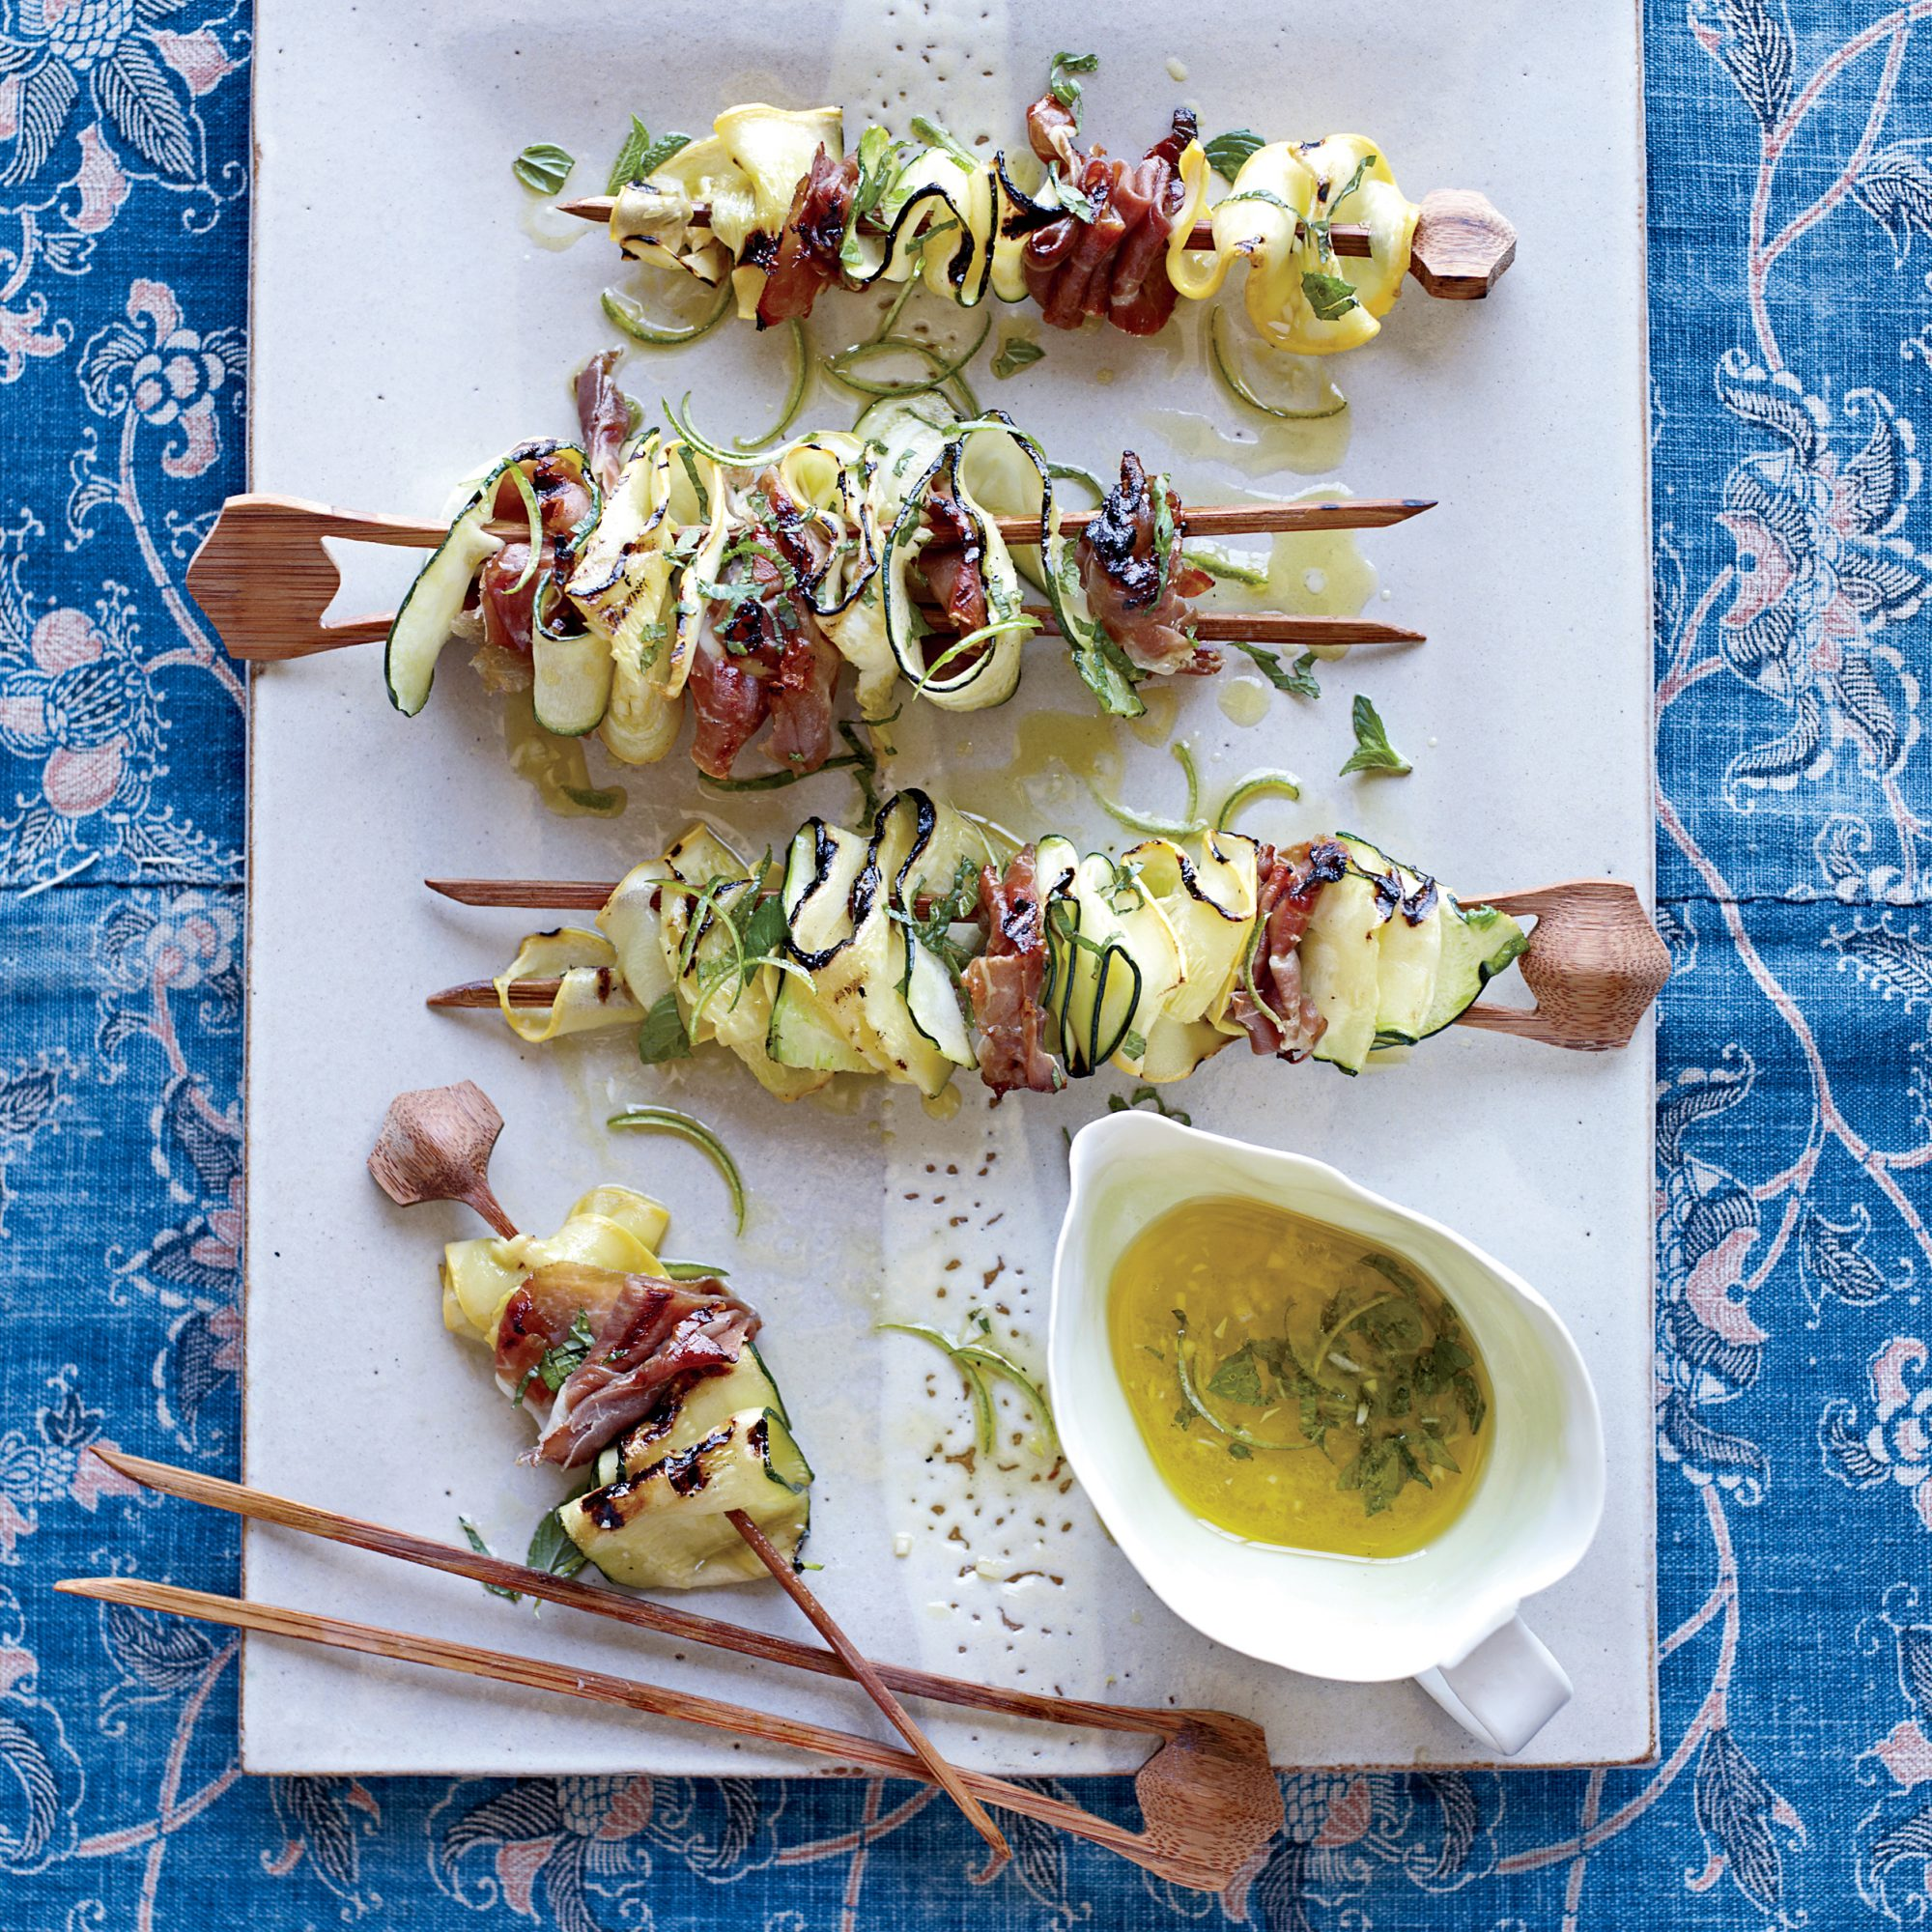 201109-r-grilled-squash-ribbons-and-prosciutto-with-mint-dressing.jpg